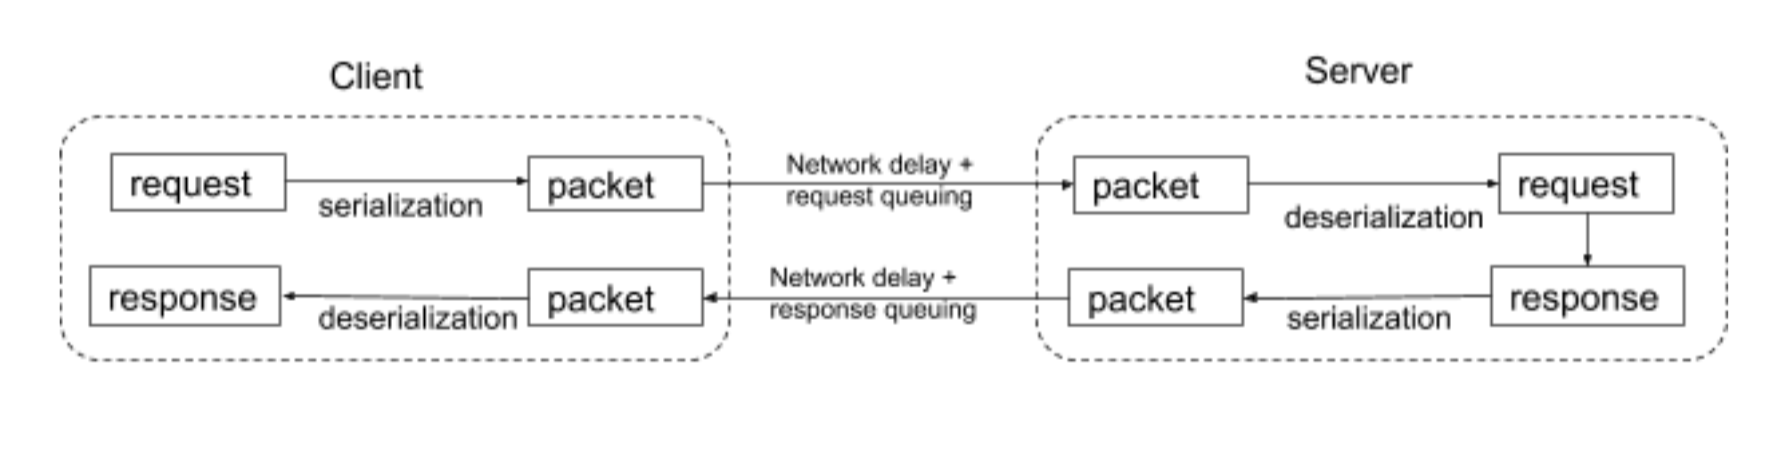 Serialization, deserialization, and network queuing are all factors that add to network overhead.